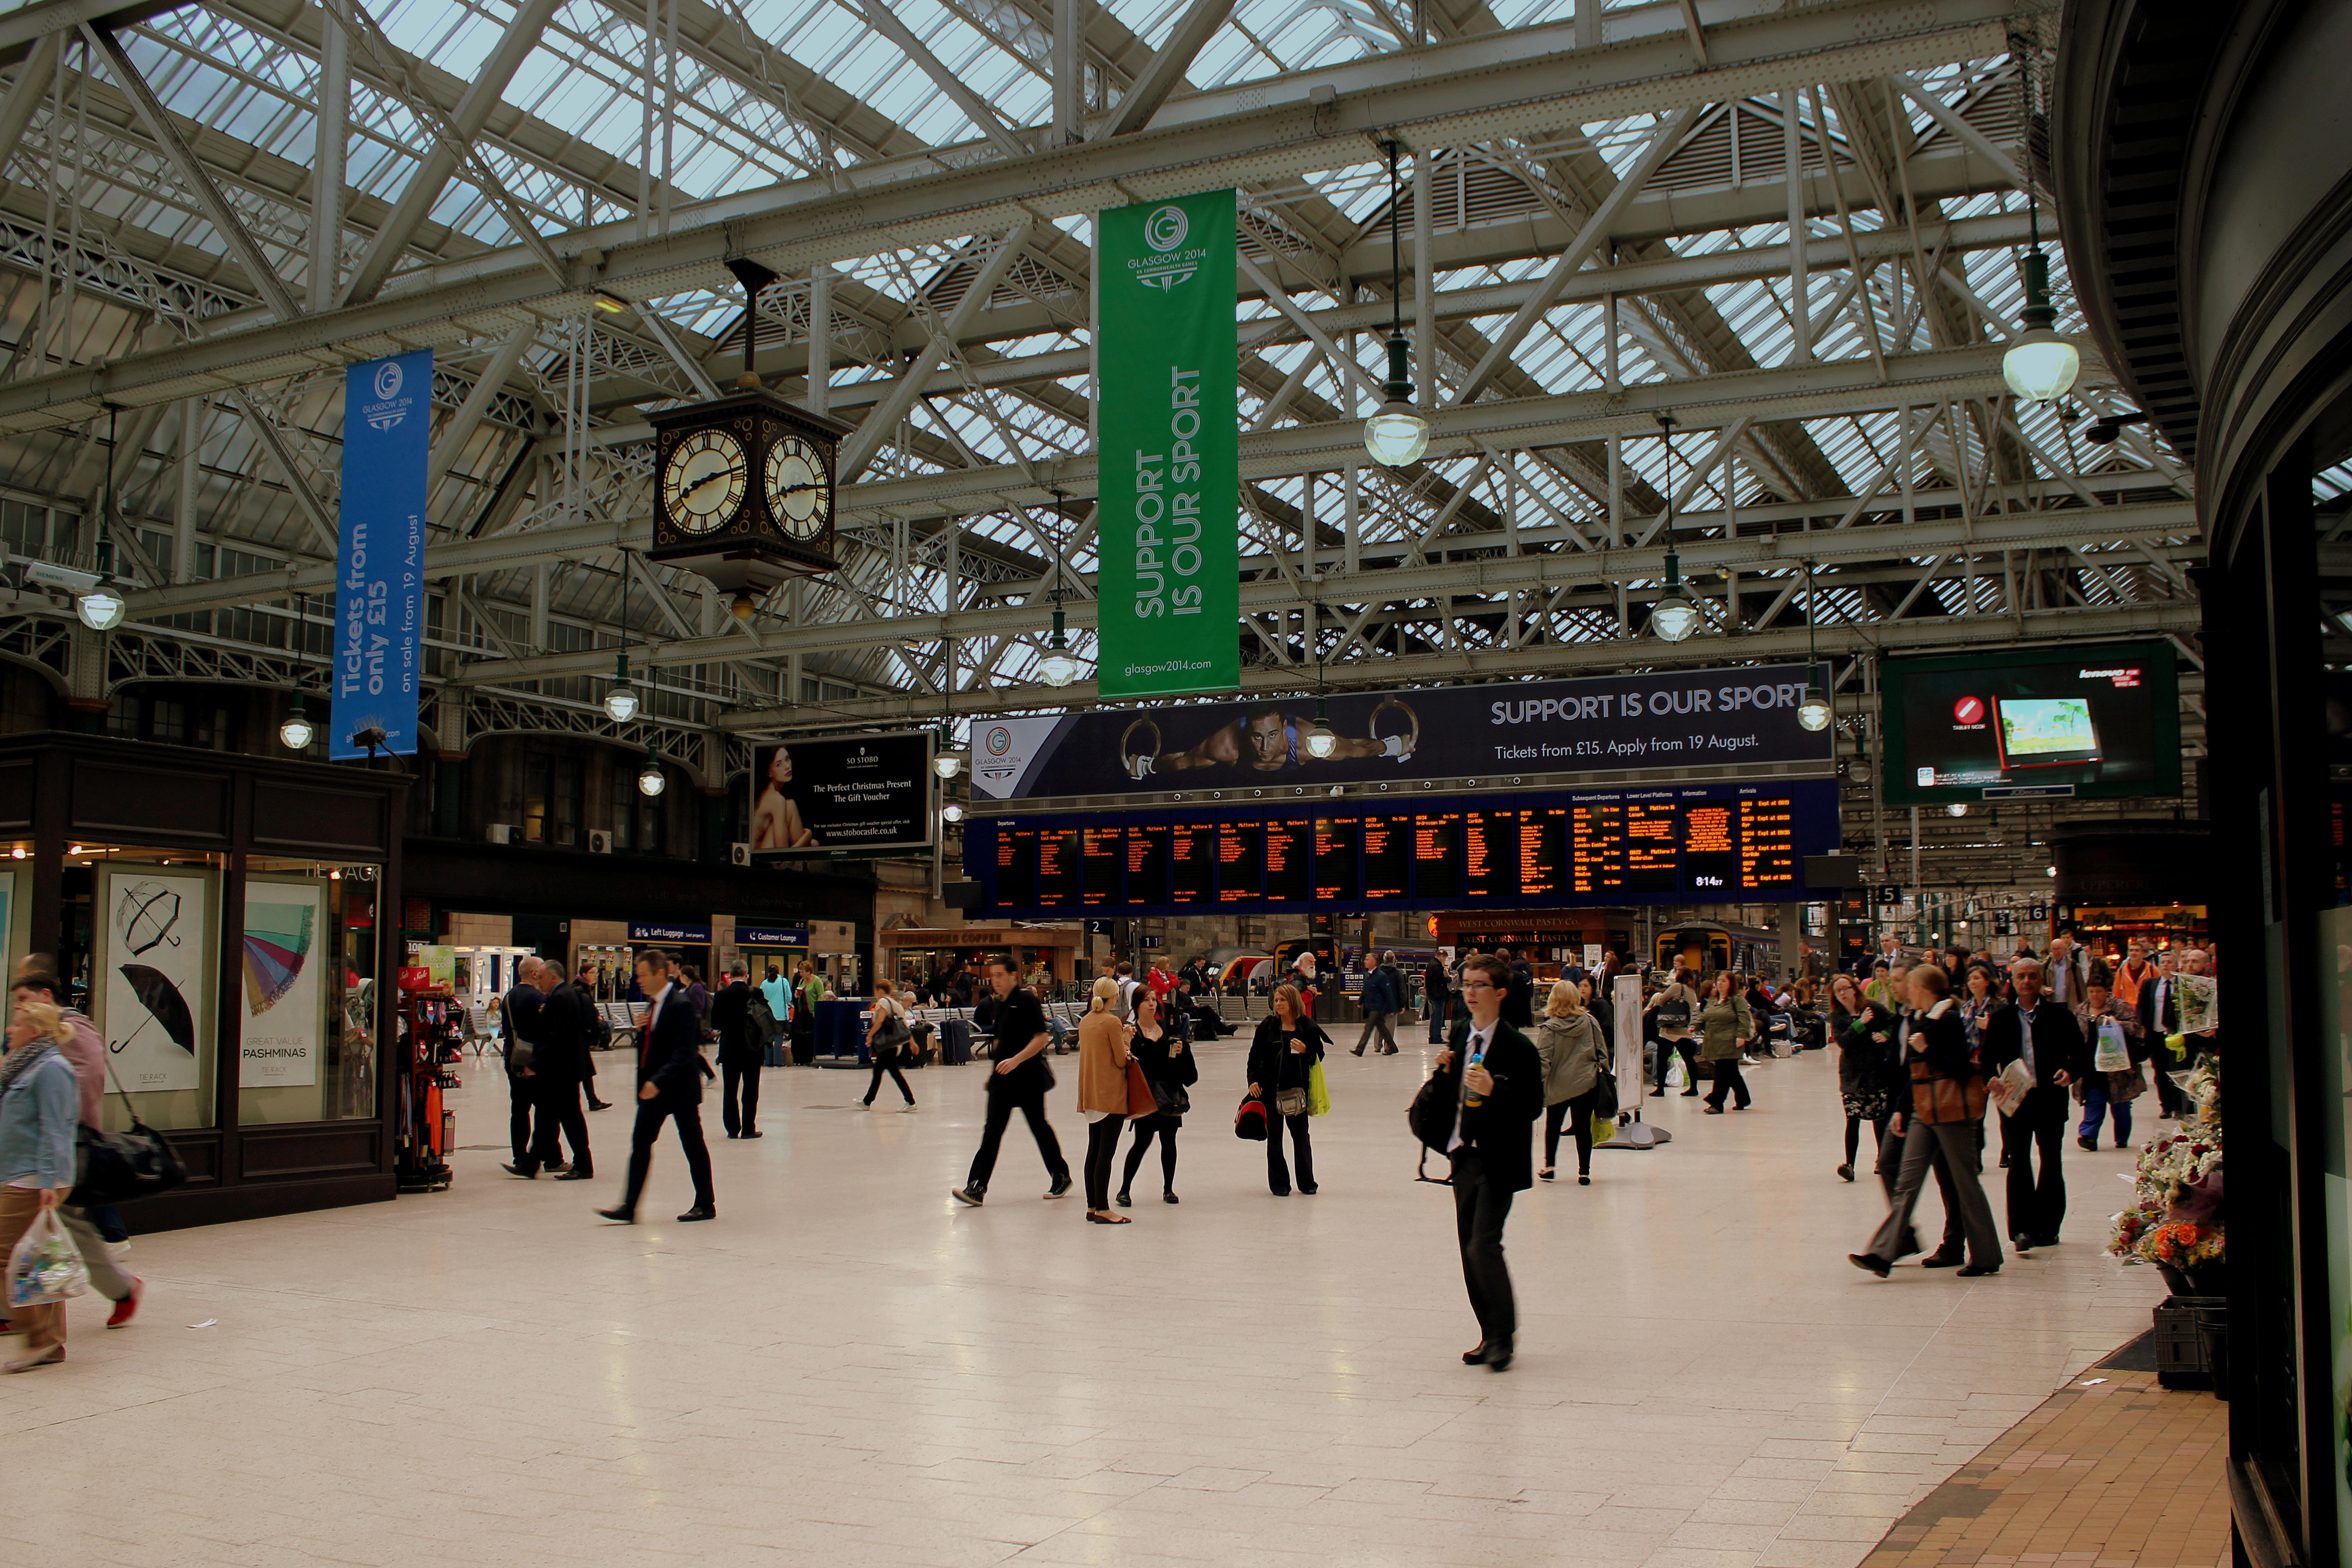 Glasgow Central station - Wikipedia